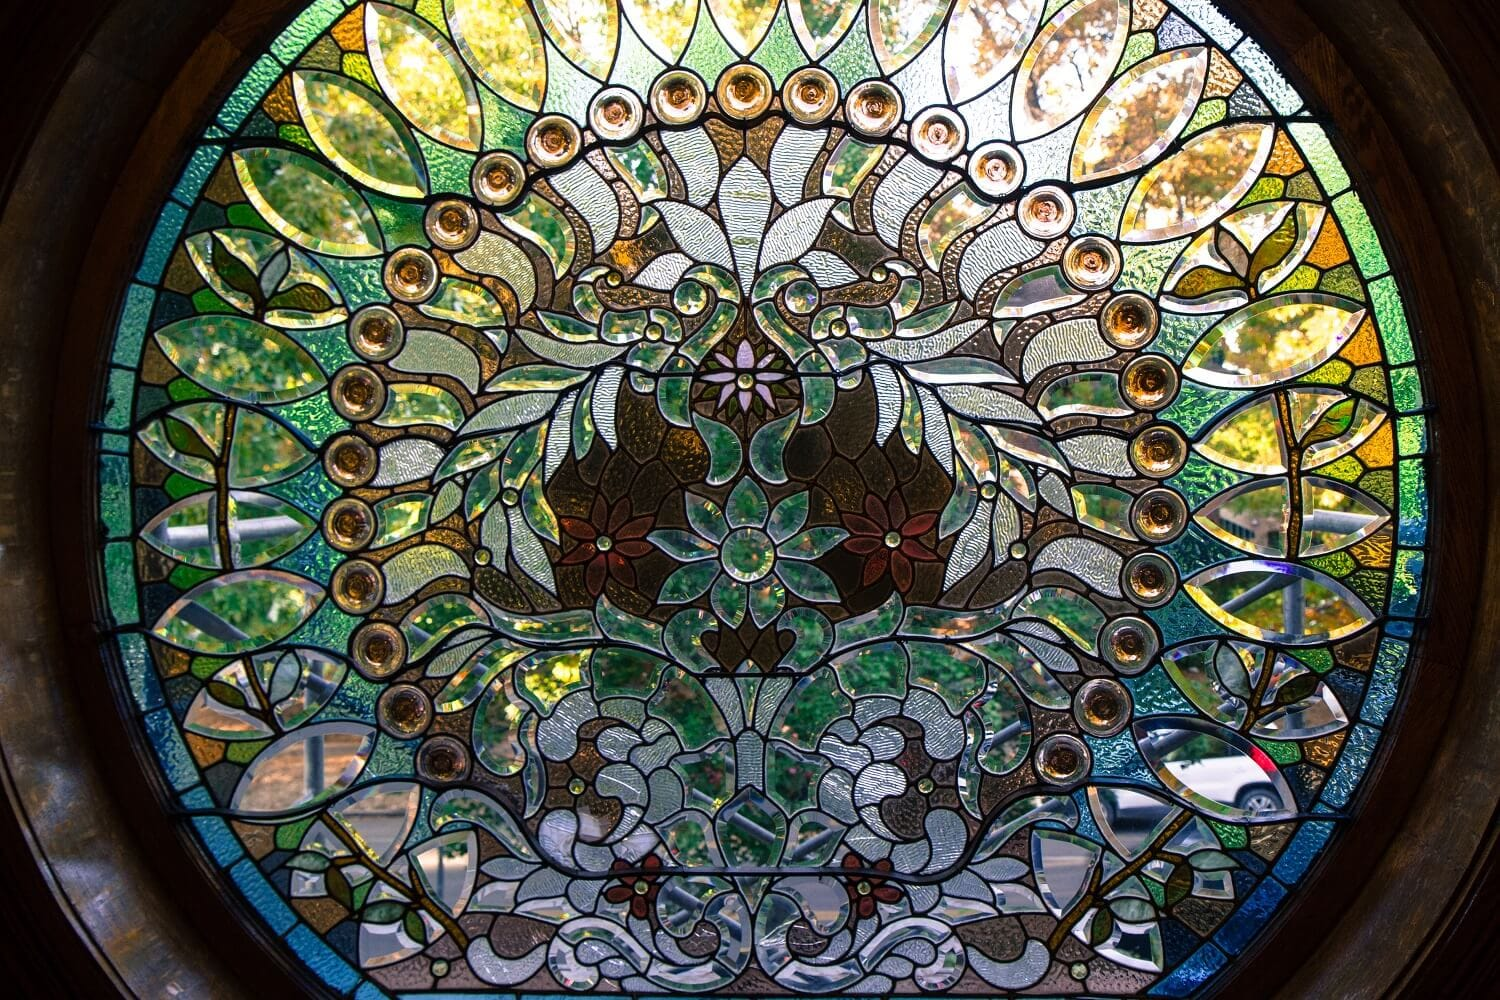 The Peacock Window by artist M. Watkins showing the impressionist style